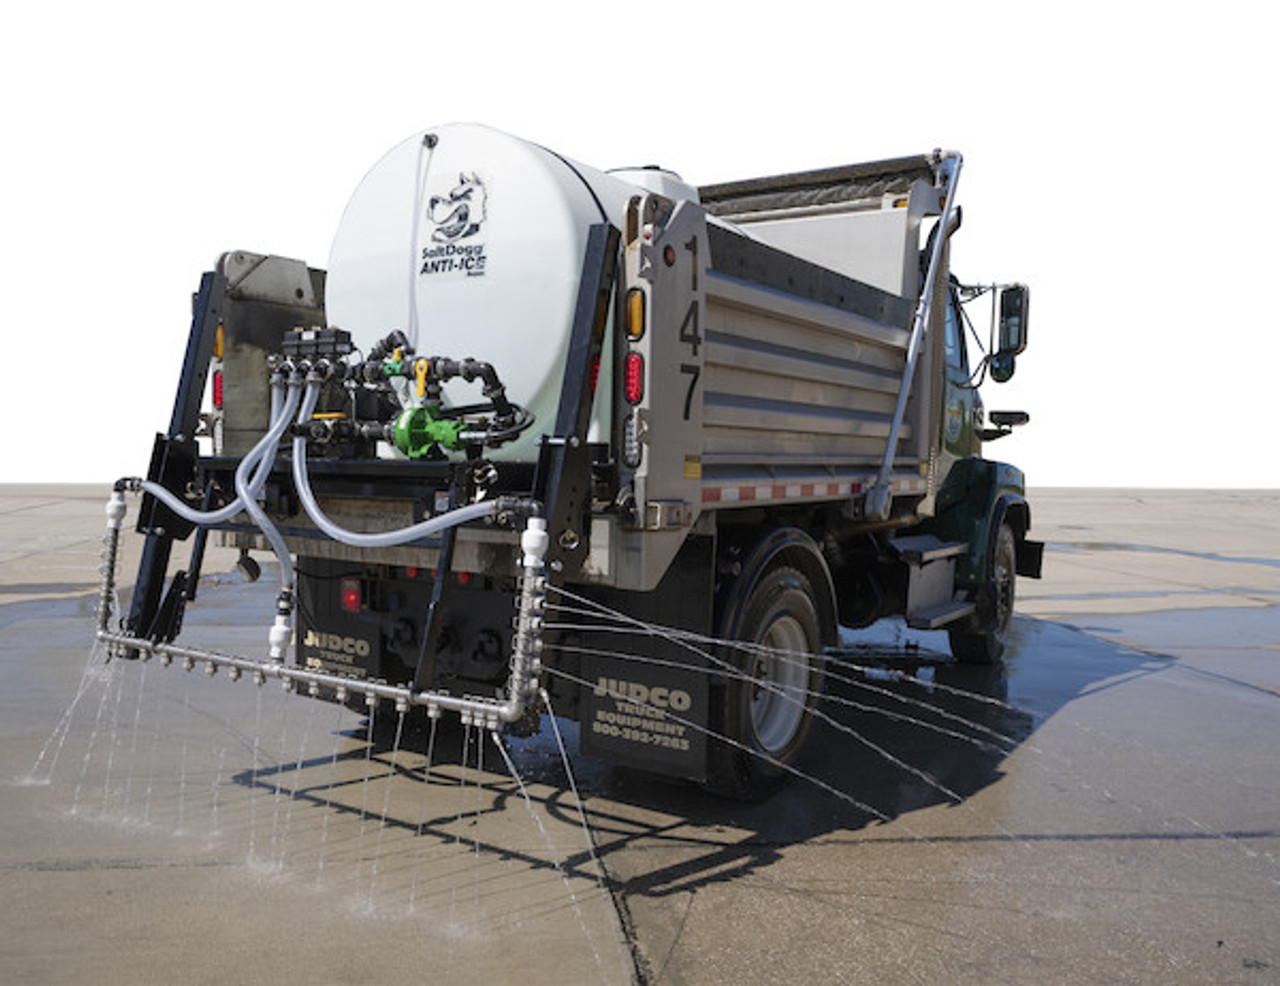 6192710 BUYERS SALTDOGG 1065 Gallon Hydraulic Anti-Ice System With One-Lane Spray Bar And Manual Application Rate Control  #6